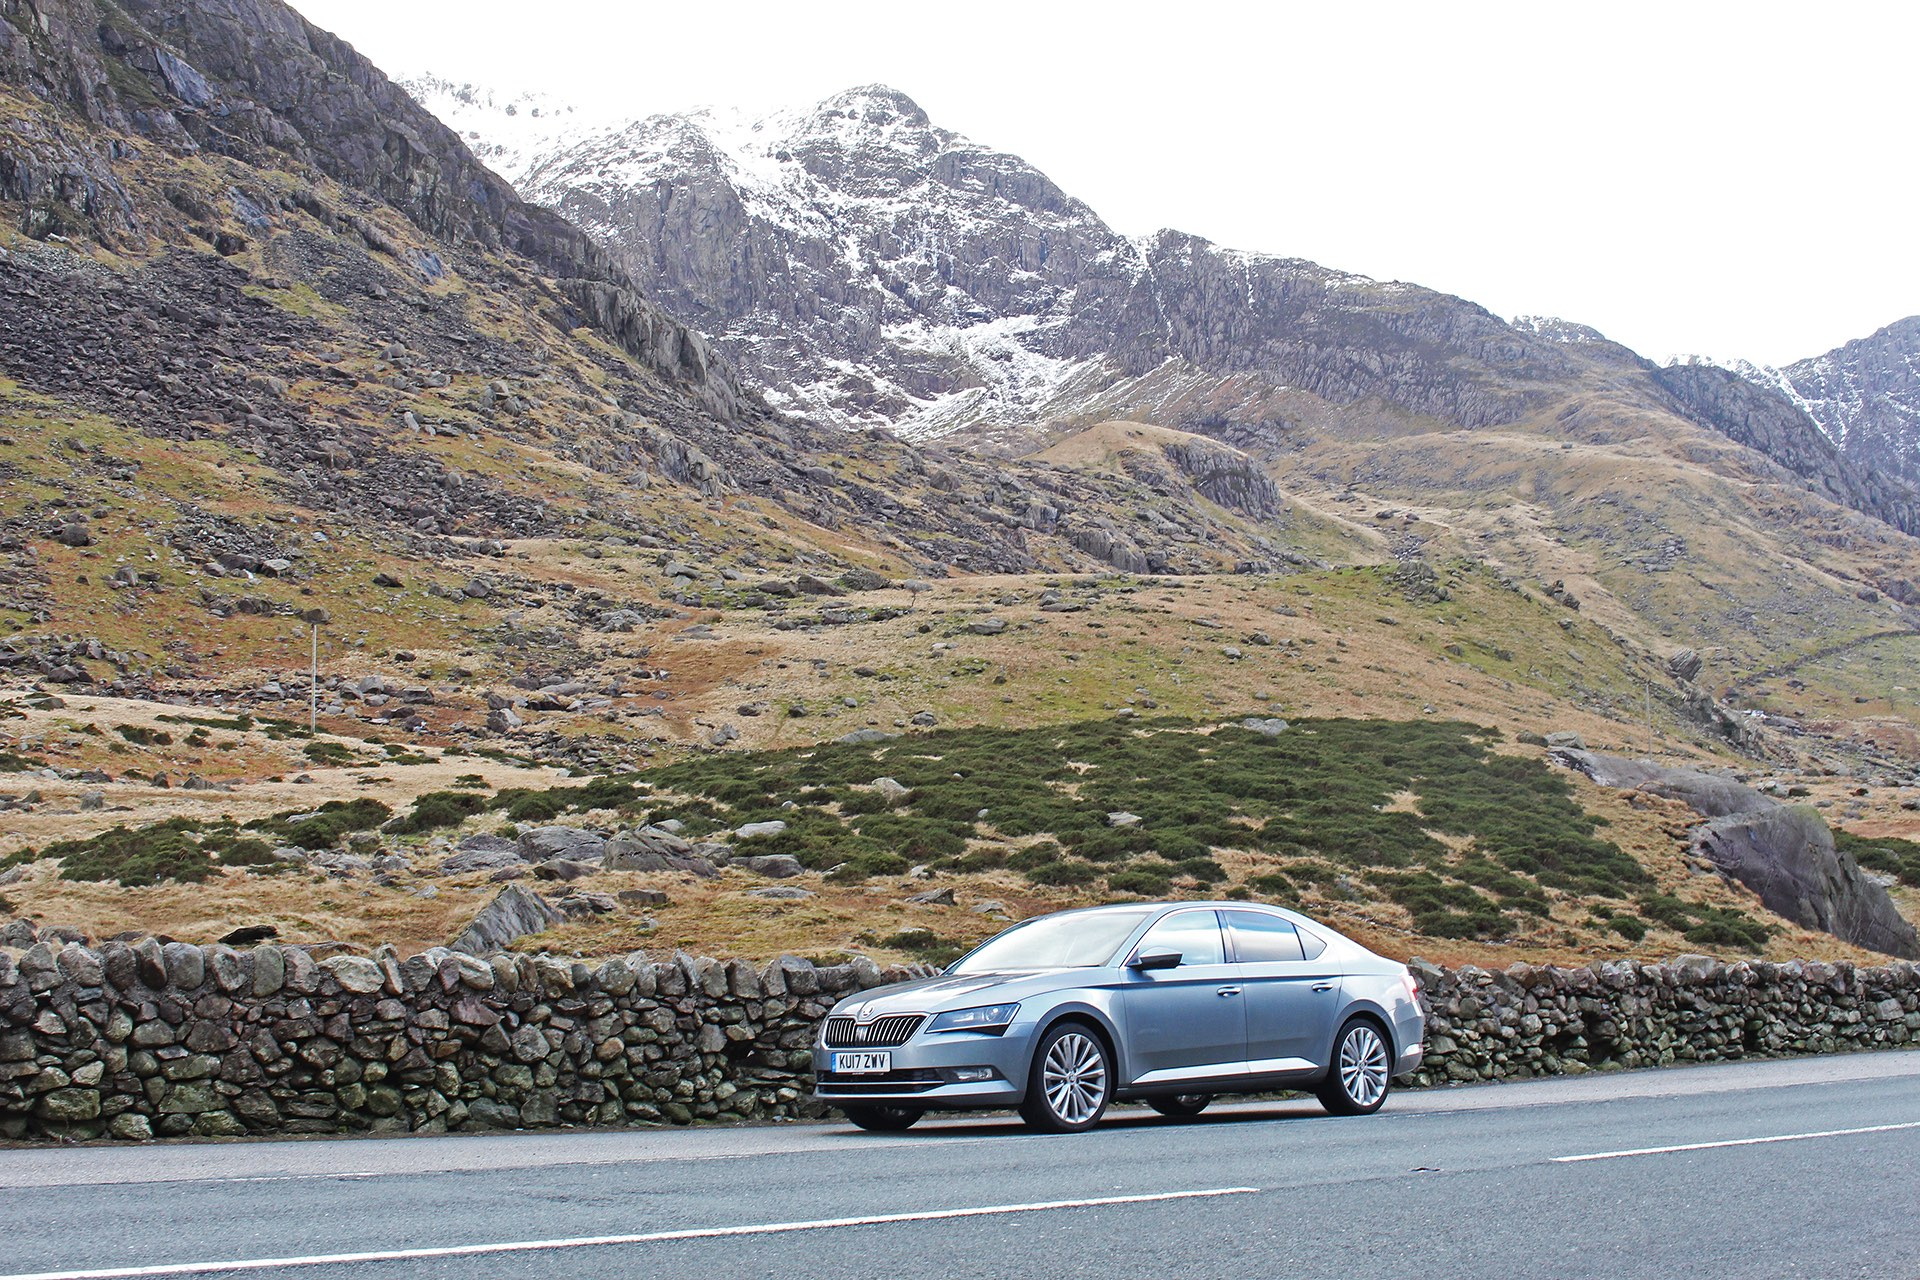 Skoda Superb in front of a mountain